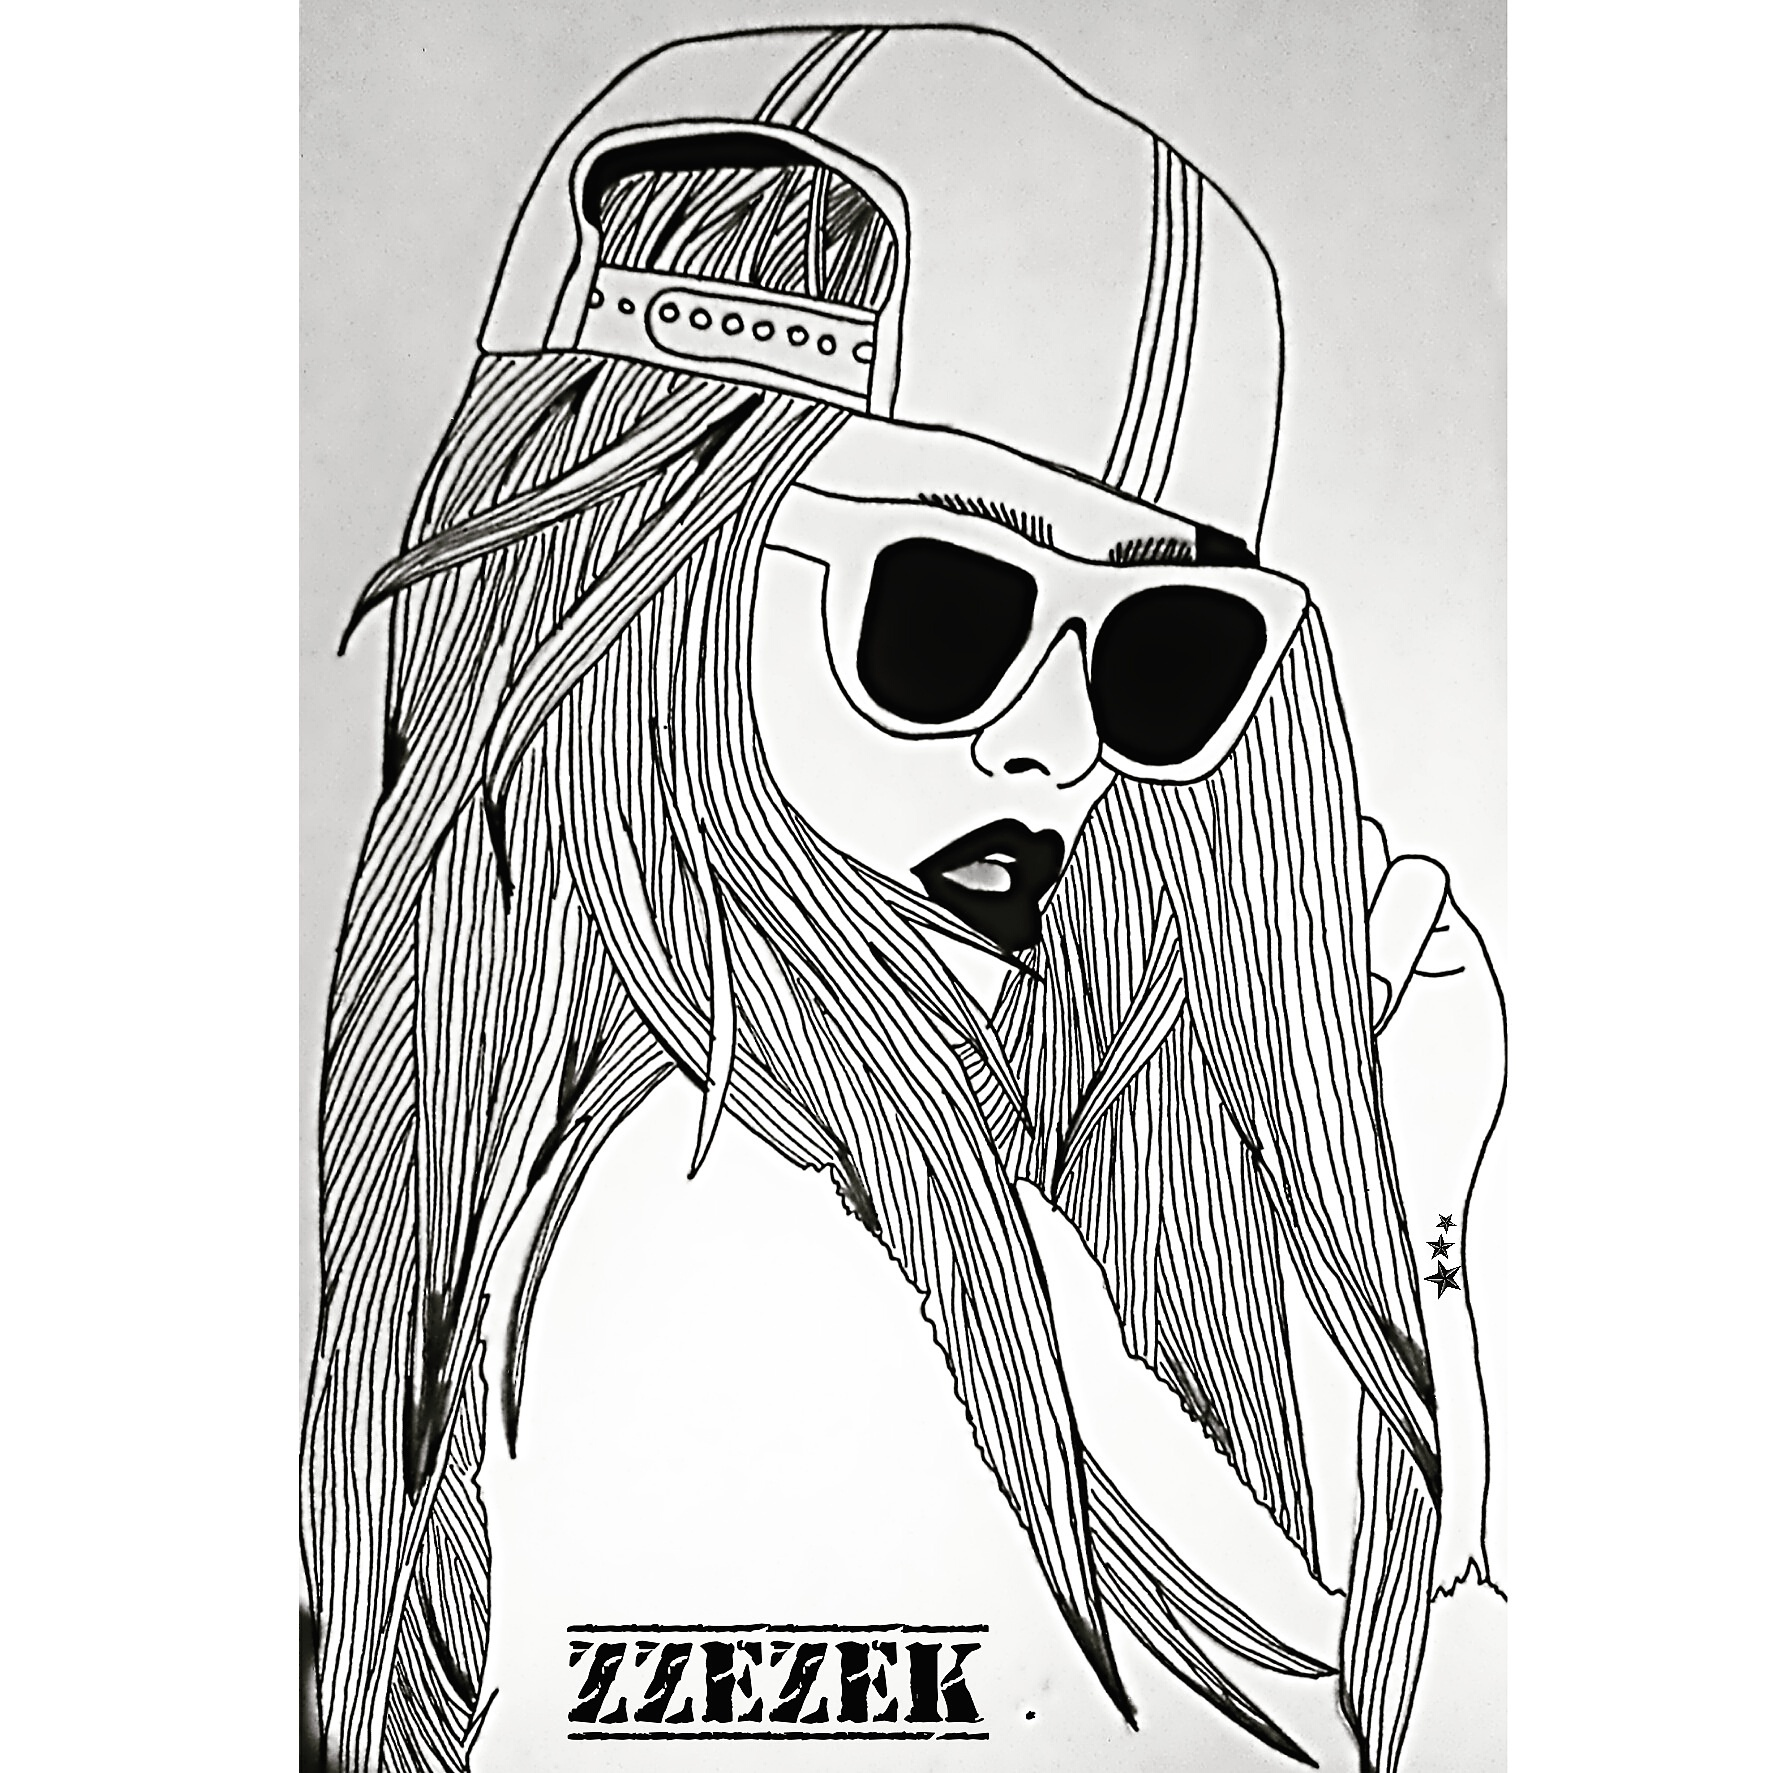 Art black black and white black and wite cool draw drawing girl zzezek